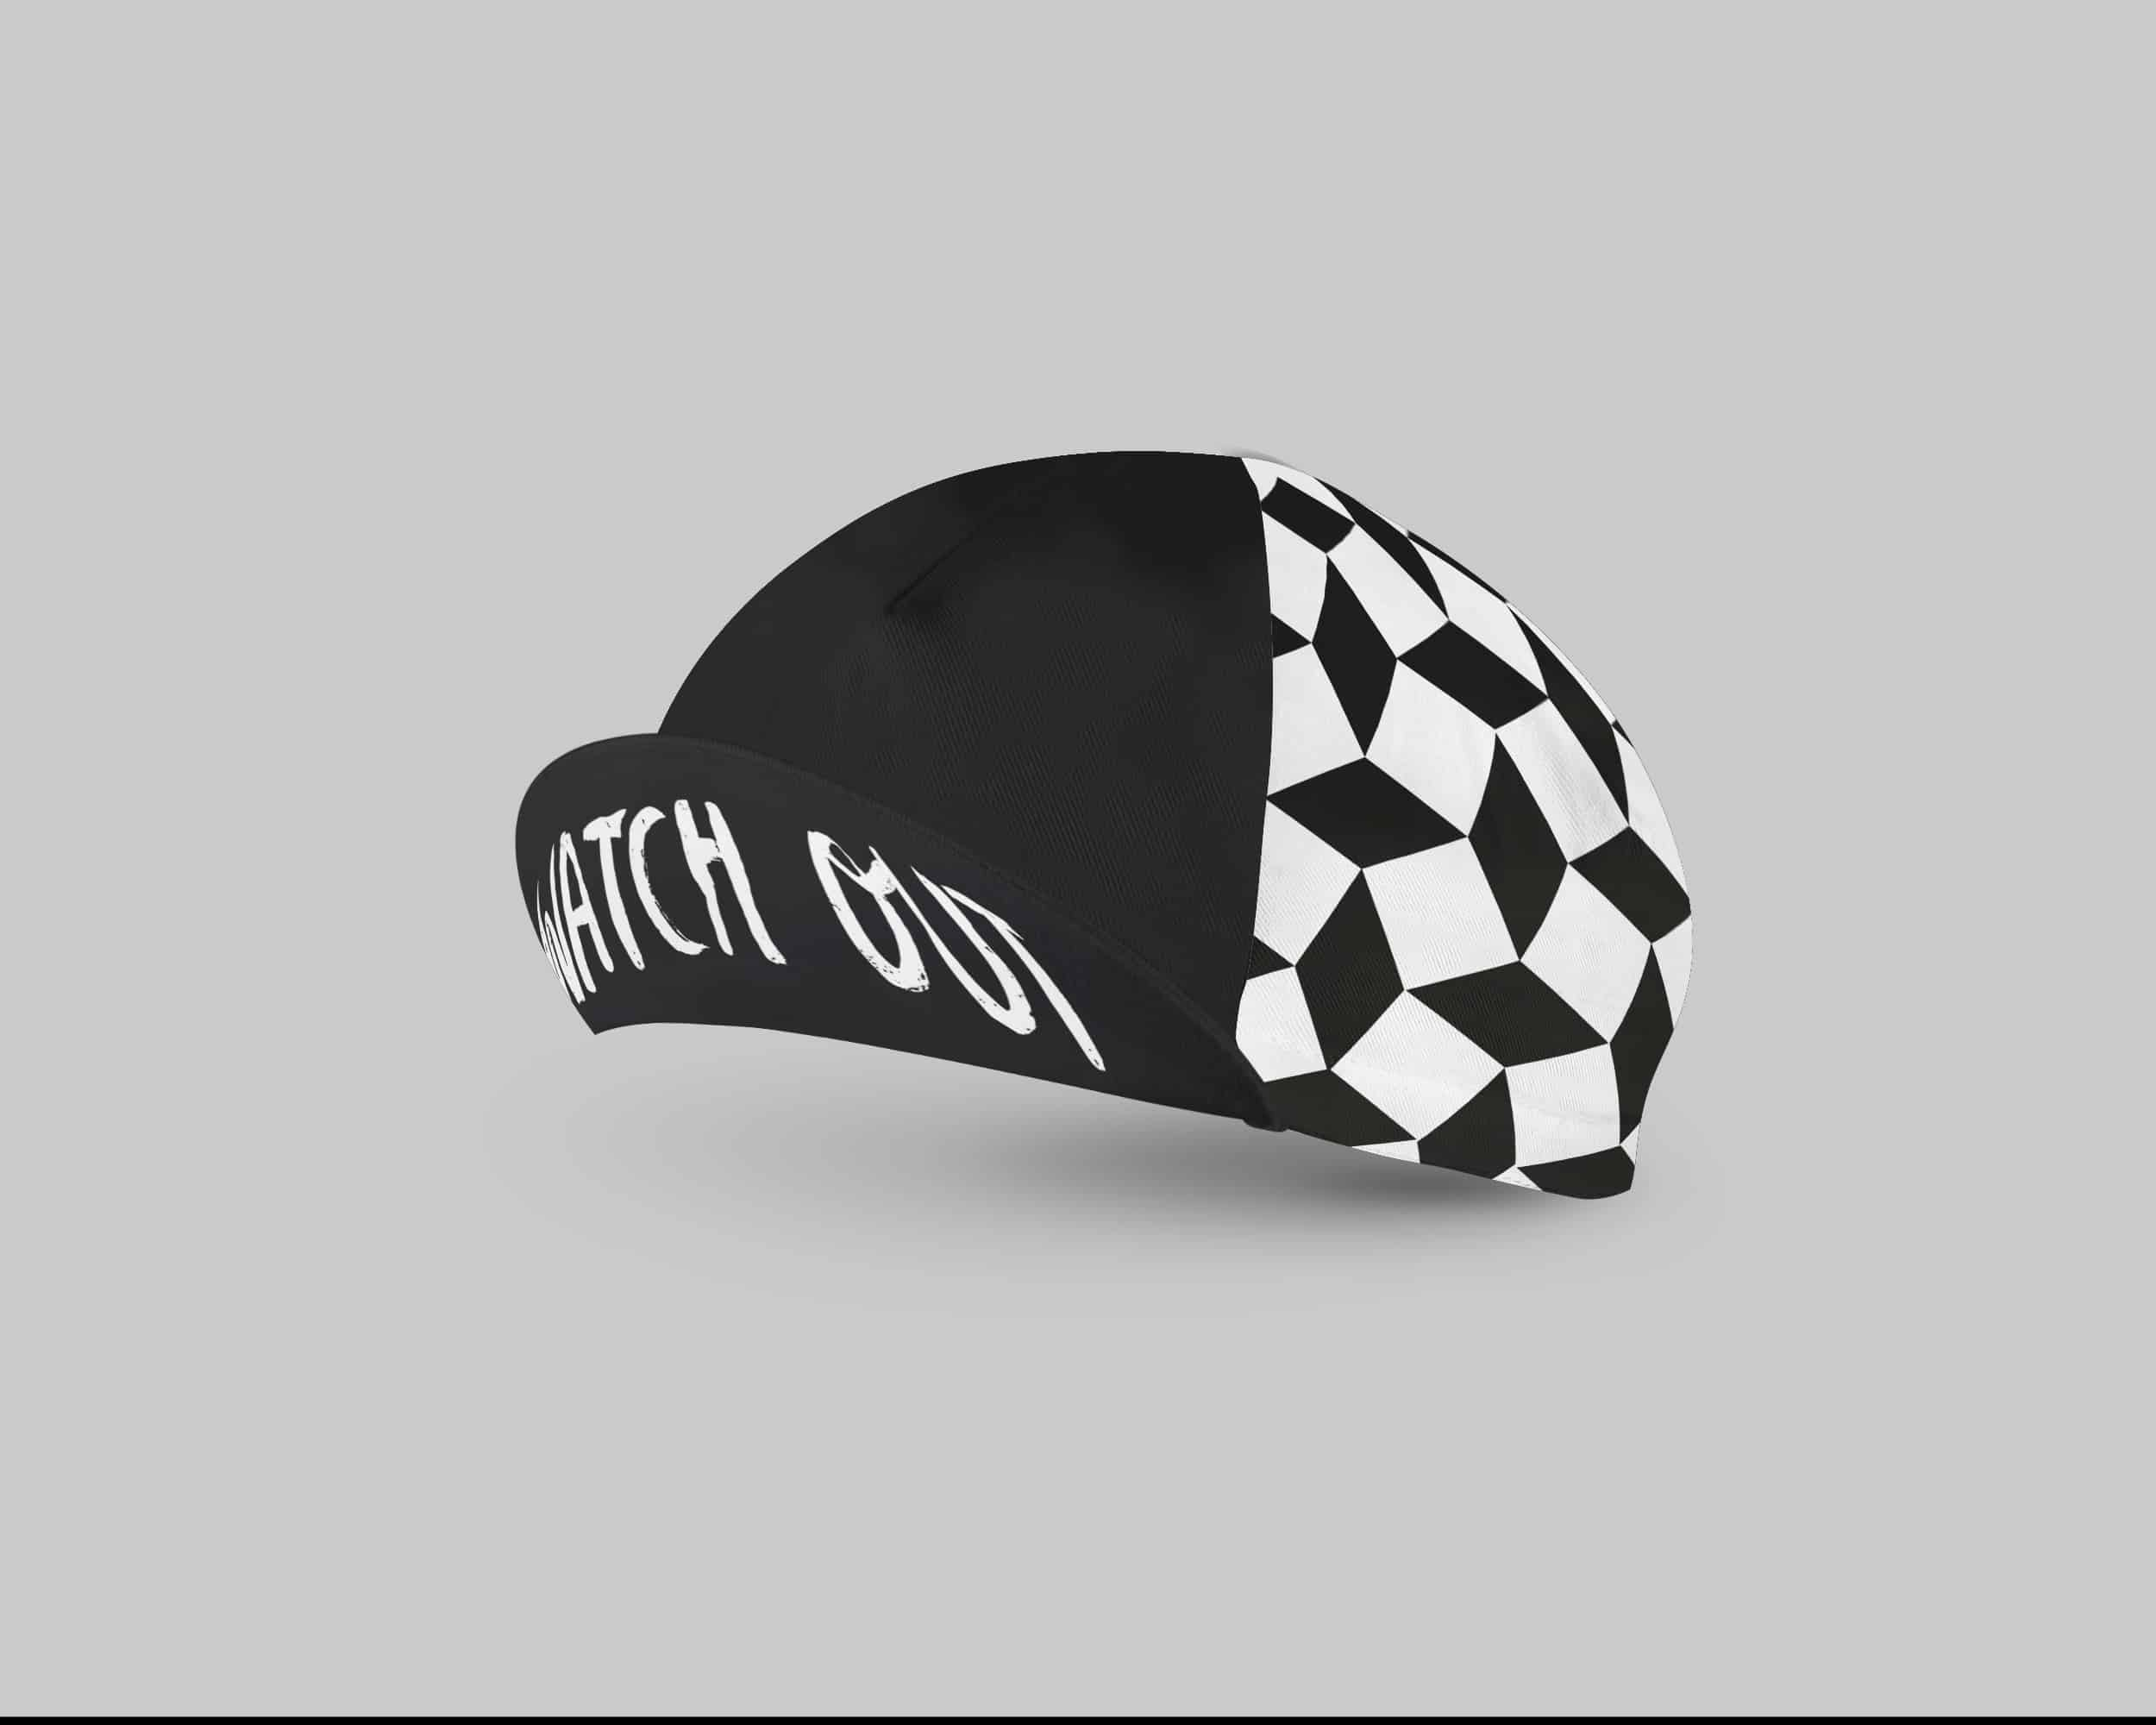 Watch out cycling cap